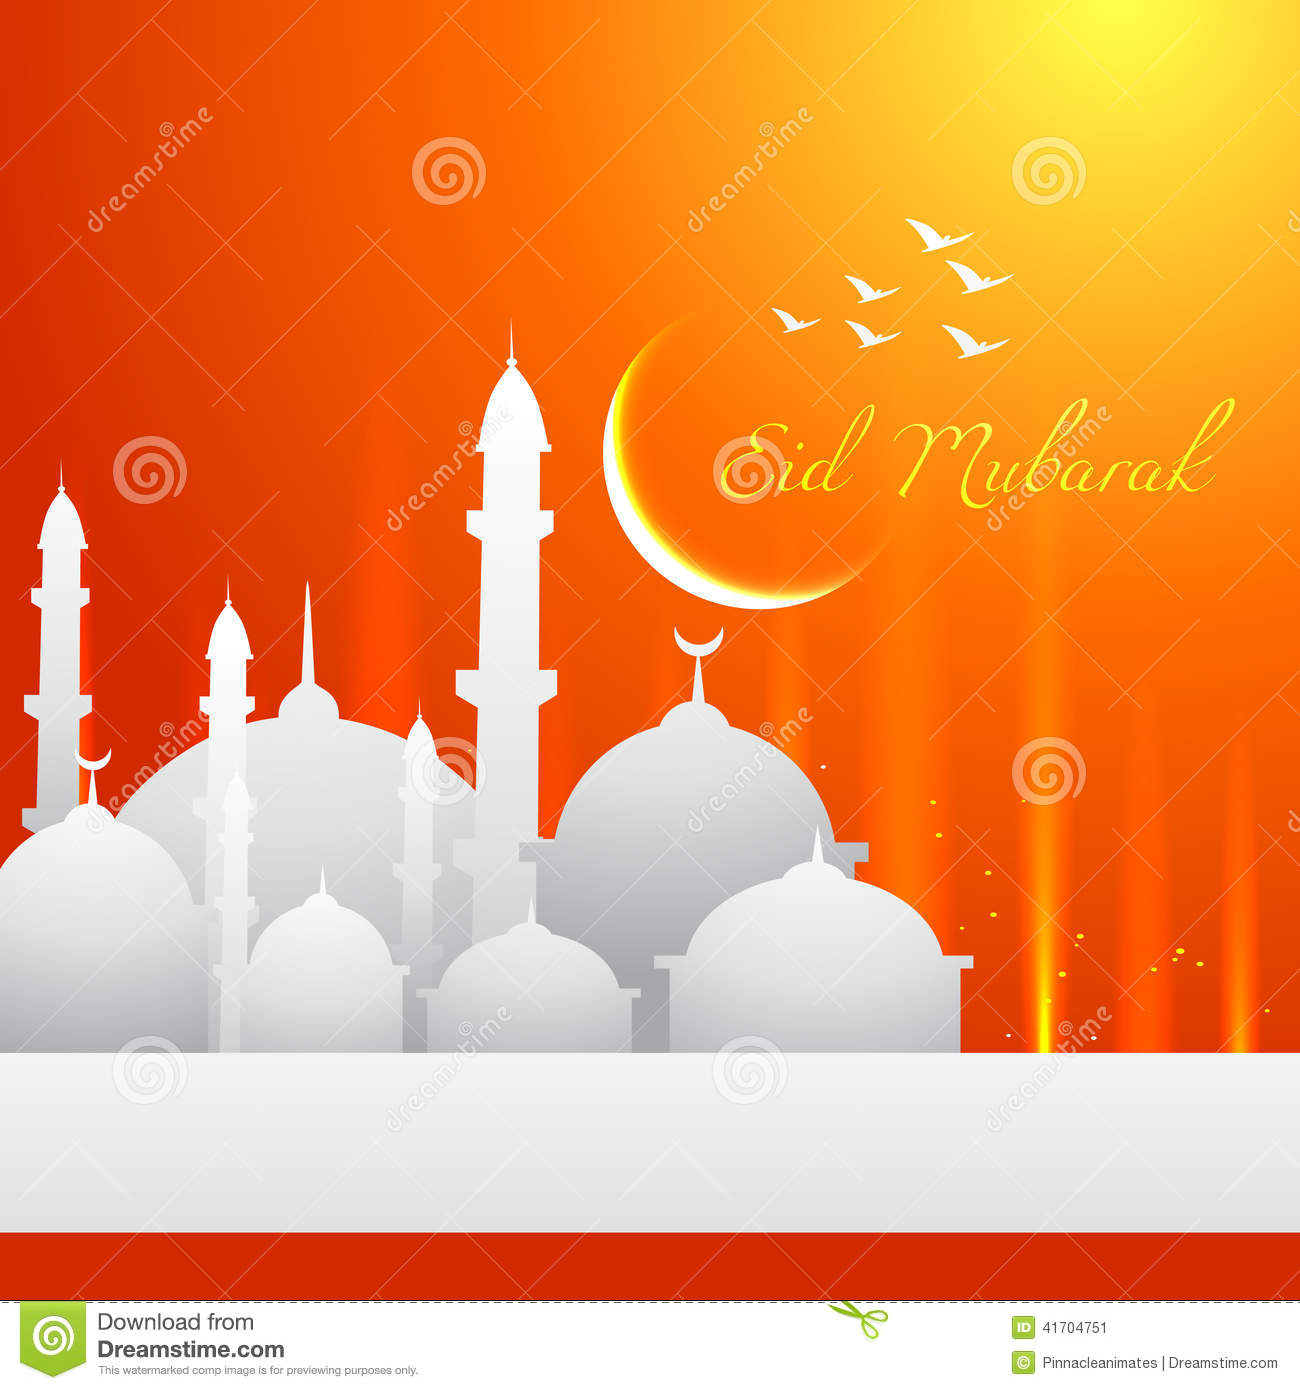 eid mubarak design stock vector illustration of design 41704751 dreamstime com